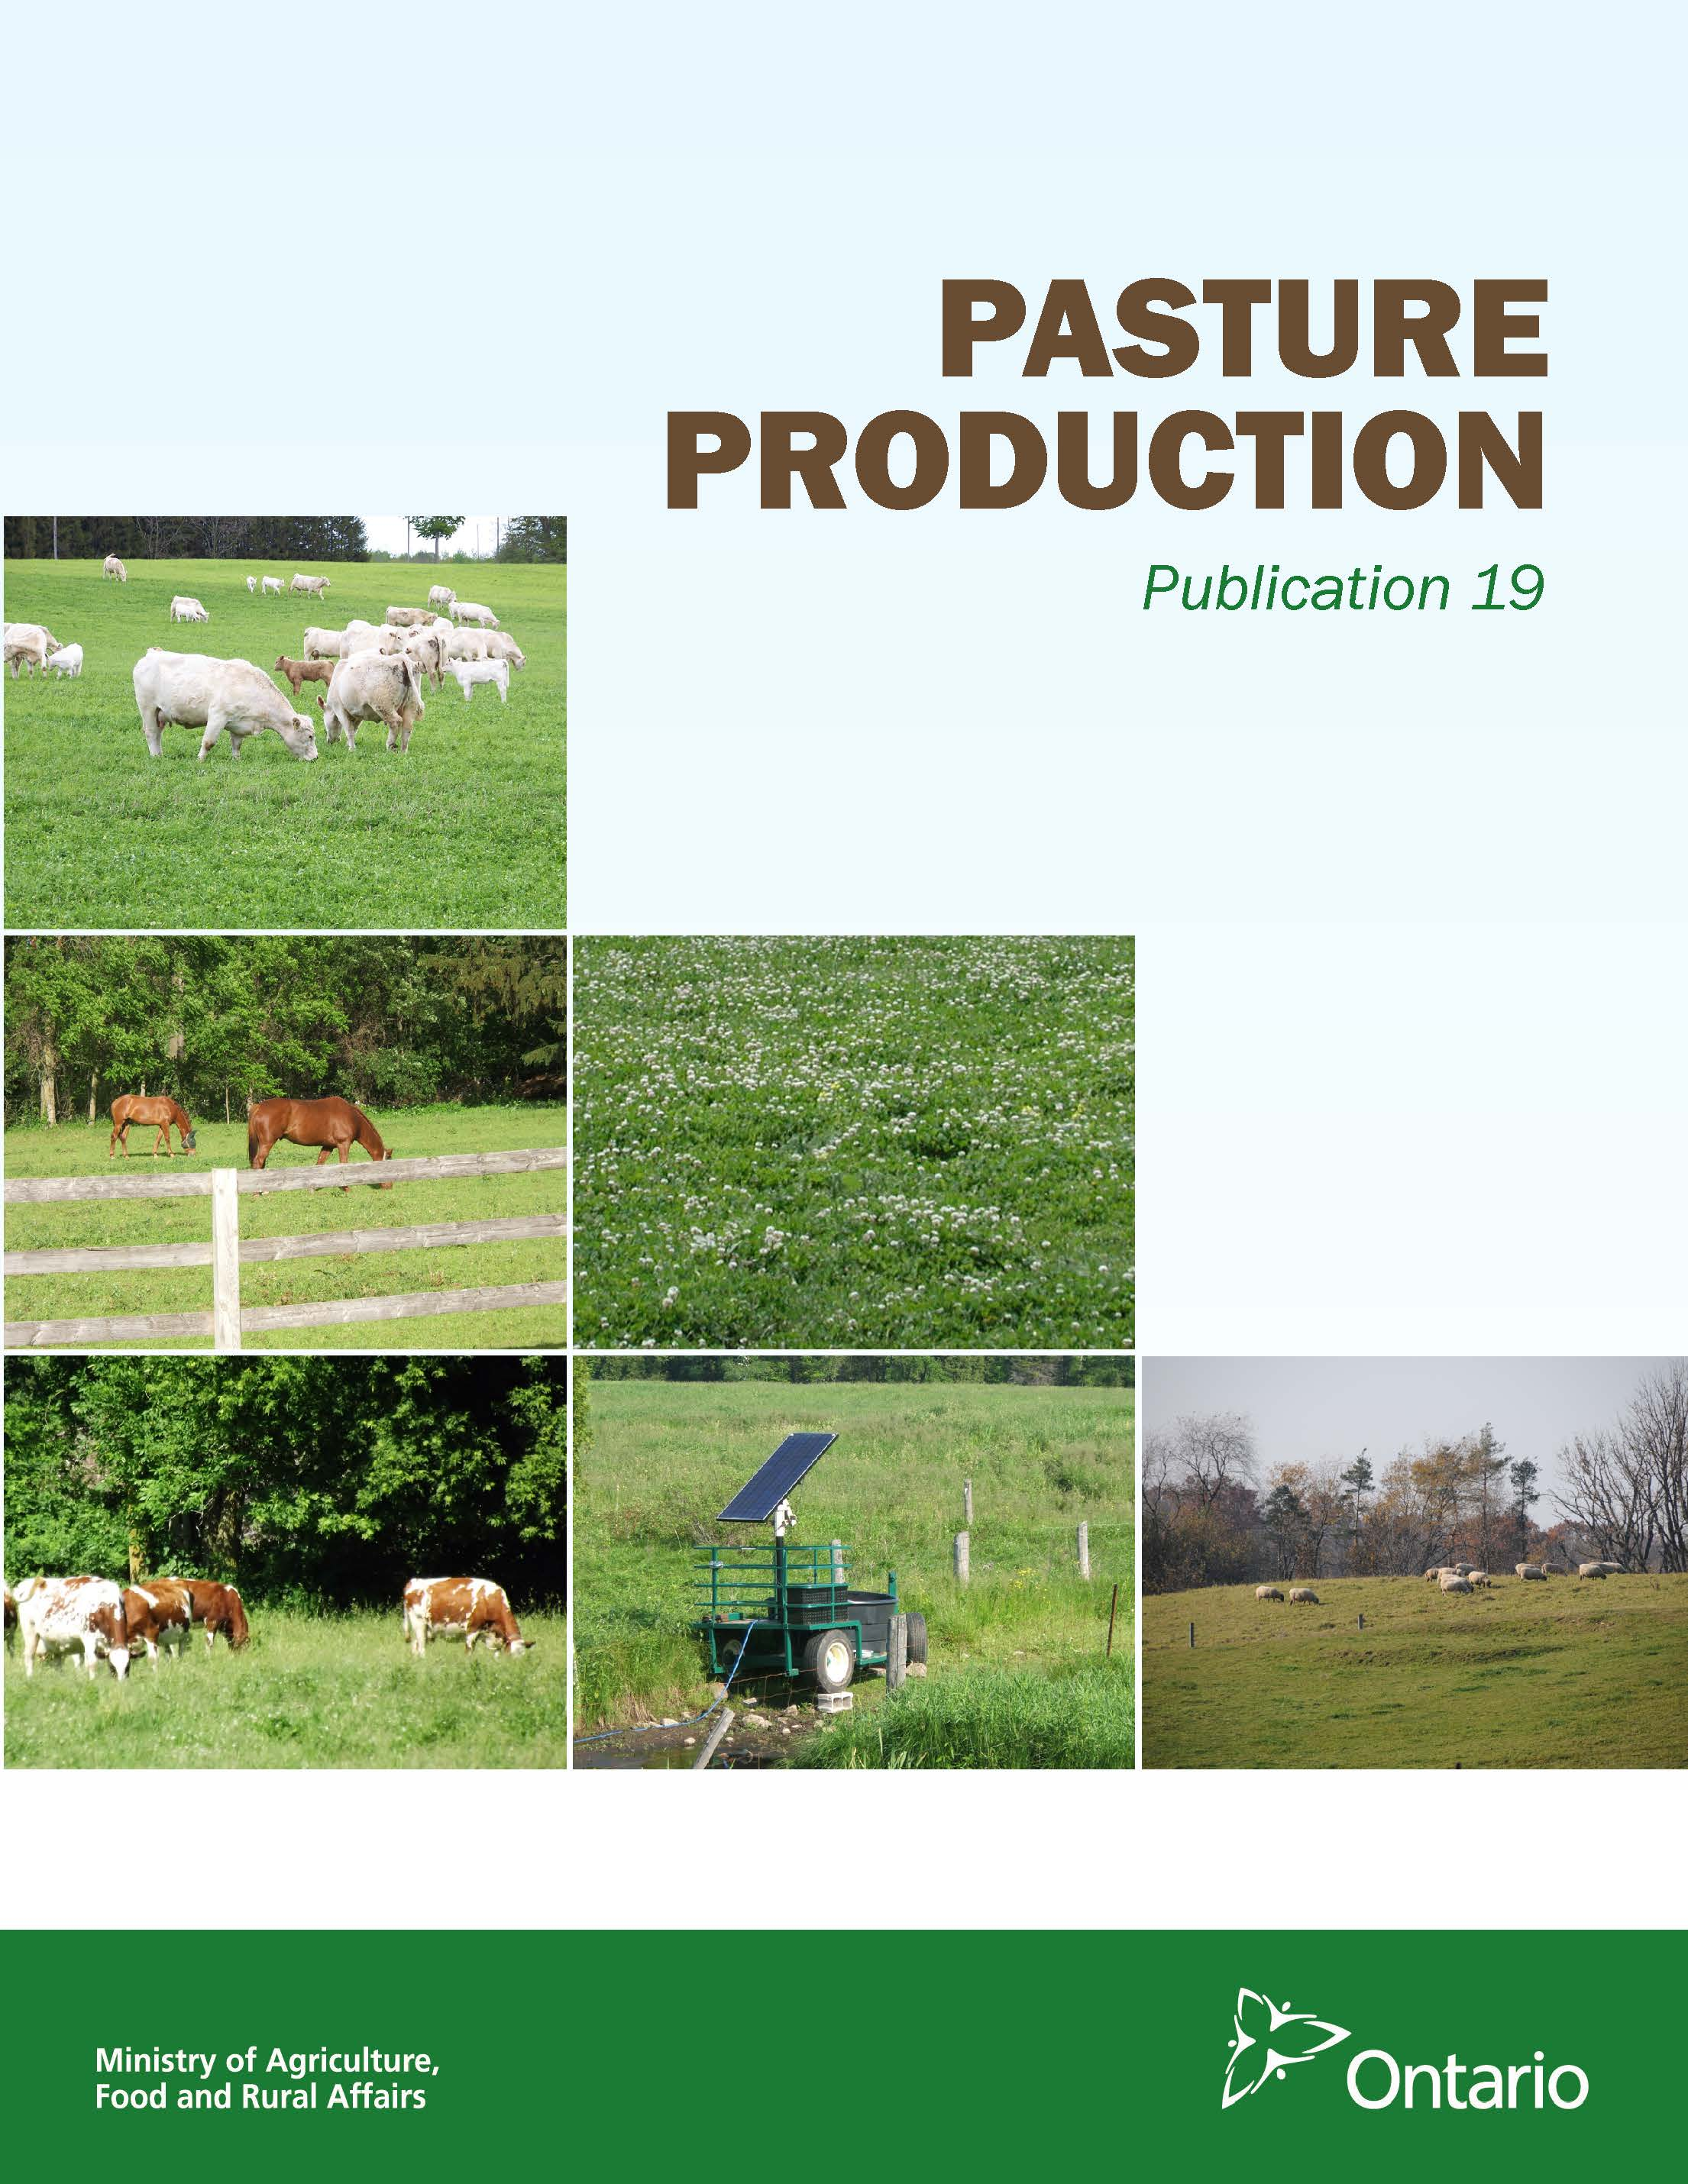 Front cover image of Publication 19, Pasture Production